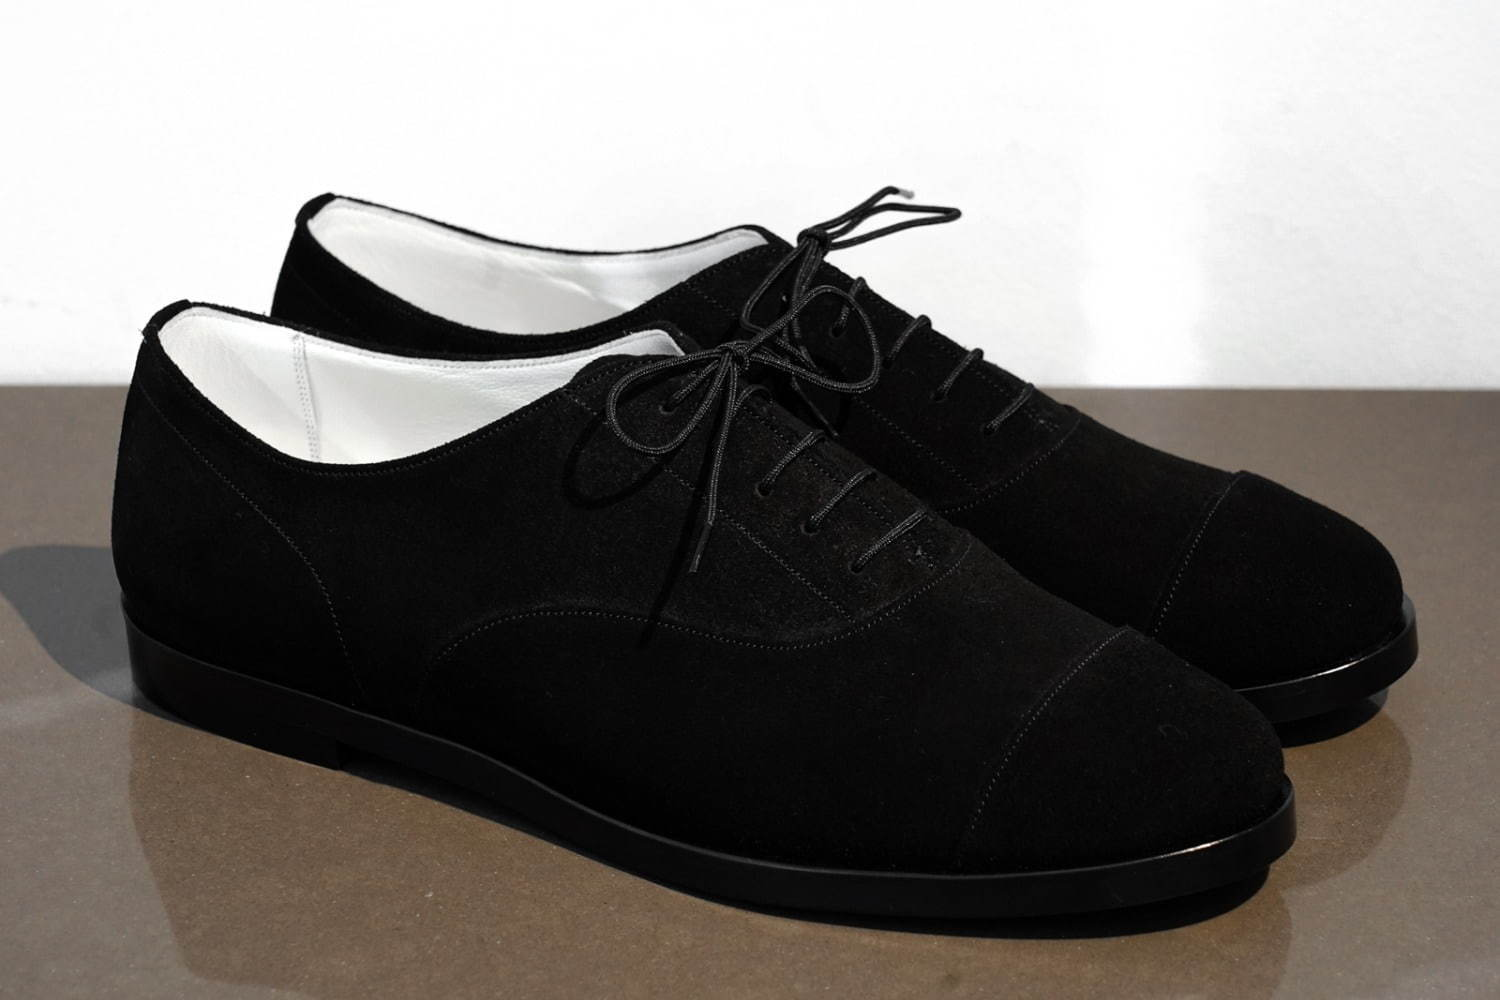 FRENCH OXFORD(LEATHER) 39,000円+税